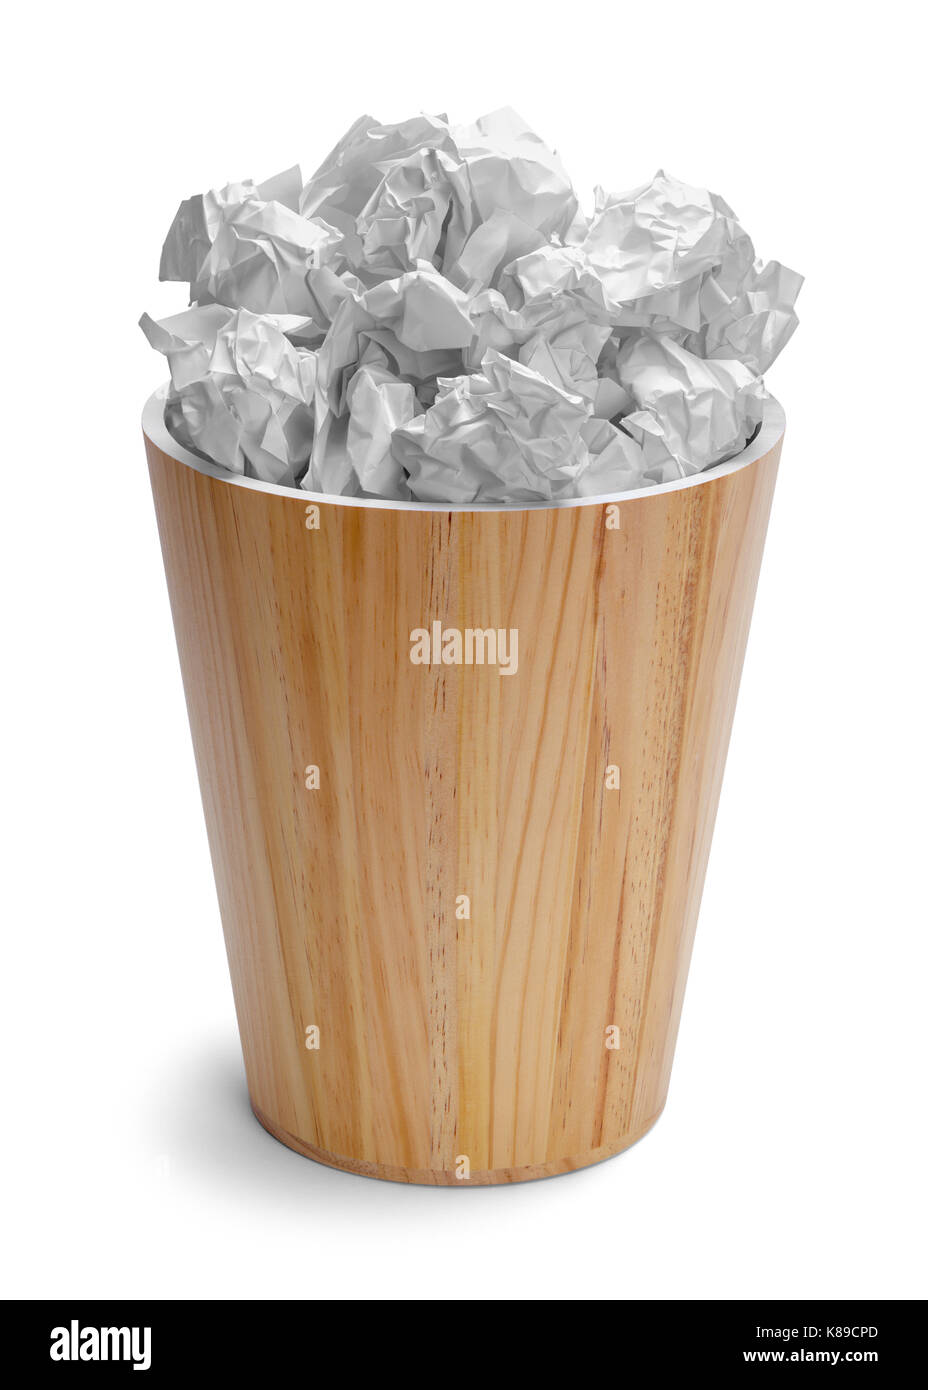 Full Office Trash Can Isolated on White Background. - Stock Image